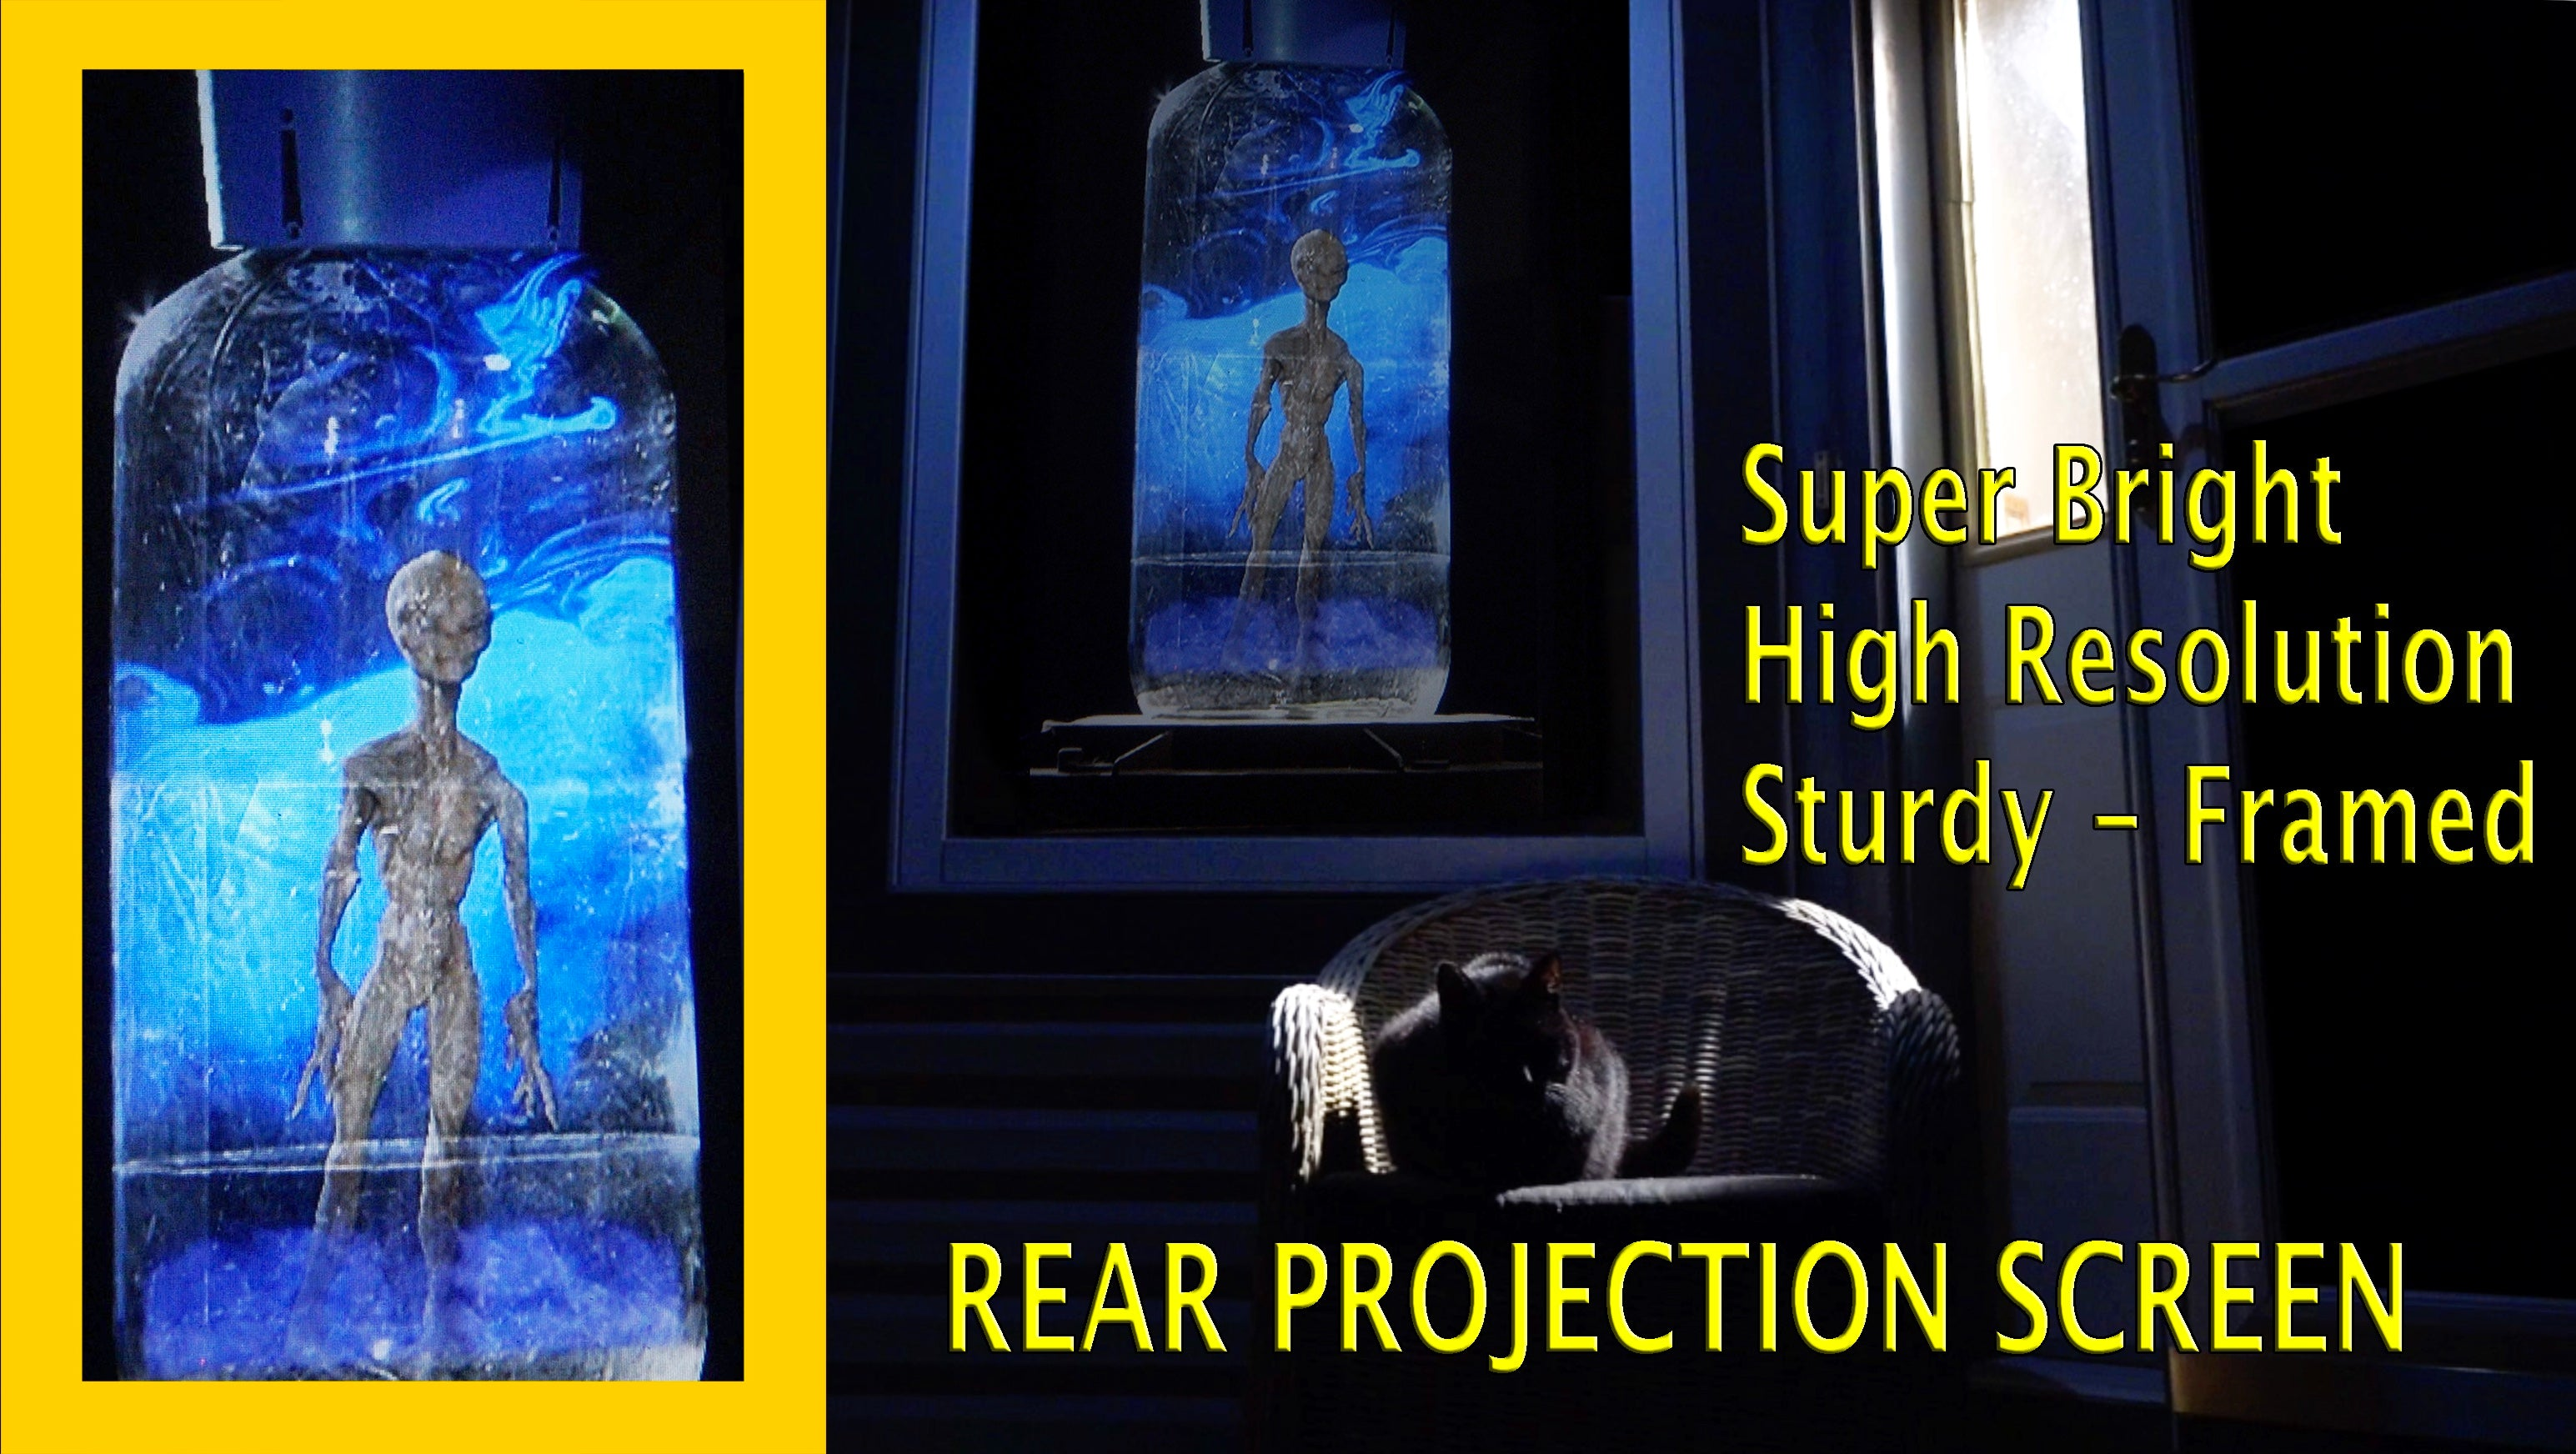 Hyers Pro Screen Professional Grade Top Quality Rear Projection Screen